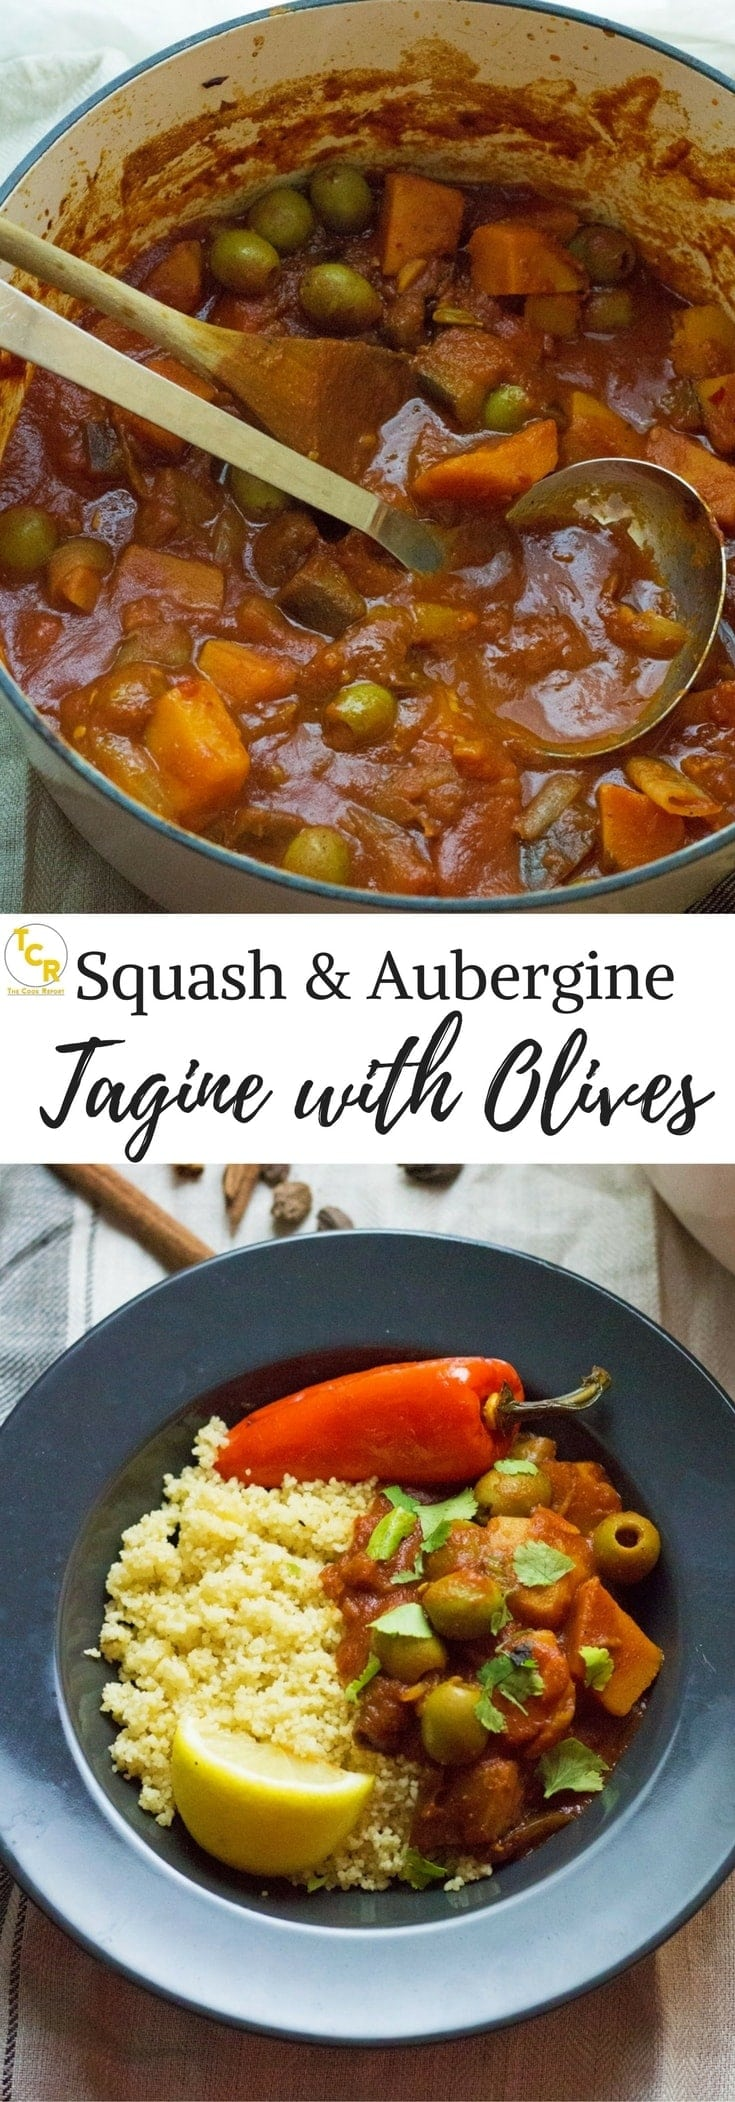 This squash & aubergine tagine is a delicious vegetarian dinner. Bursting with Moroccan flavour this tagine is healthy and suitable for vegans!